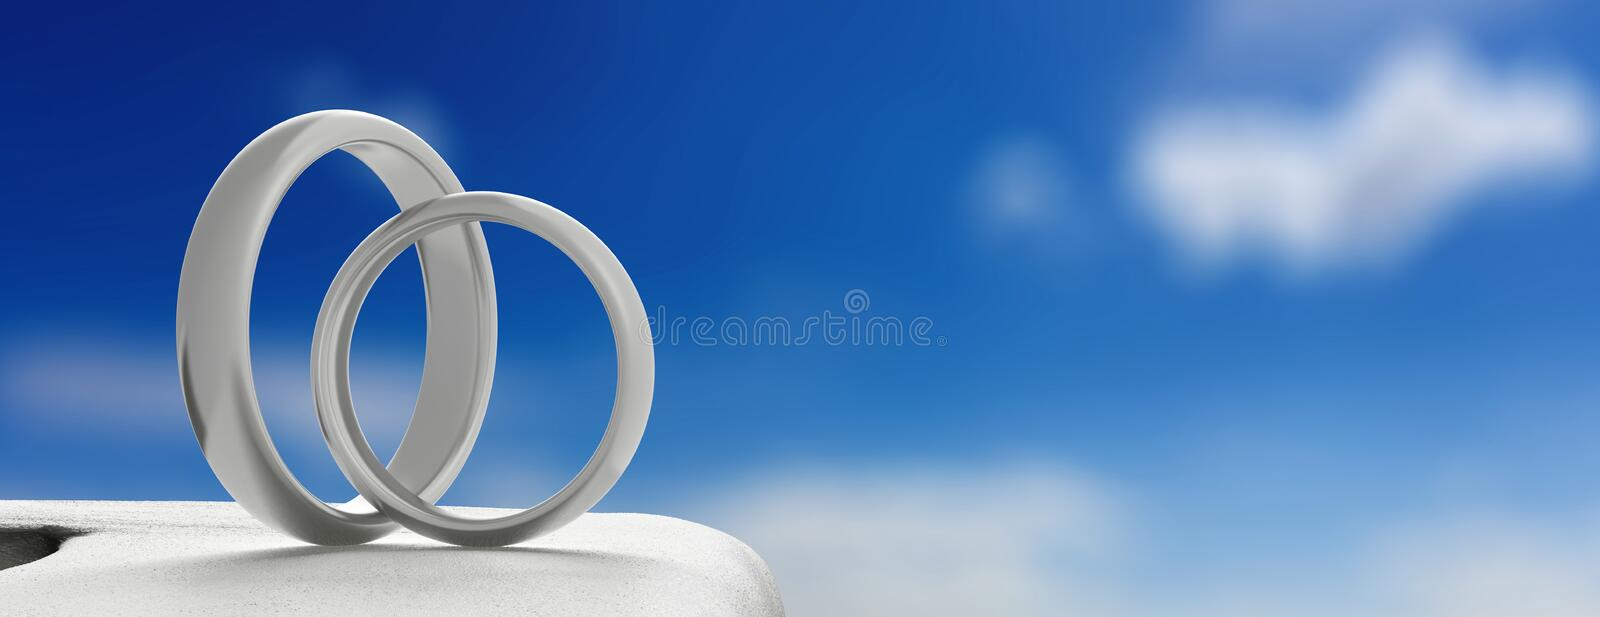 Wedding at a greek island. Wedding rings on a whitewashed wall, blue sky background, banner, copy space. Wedding in a greek island concept. Wedding rings on a vector illustration